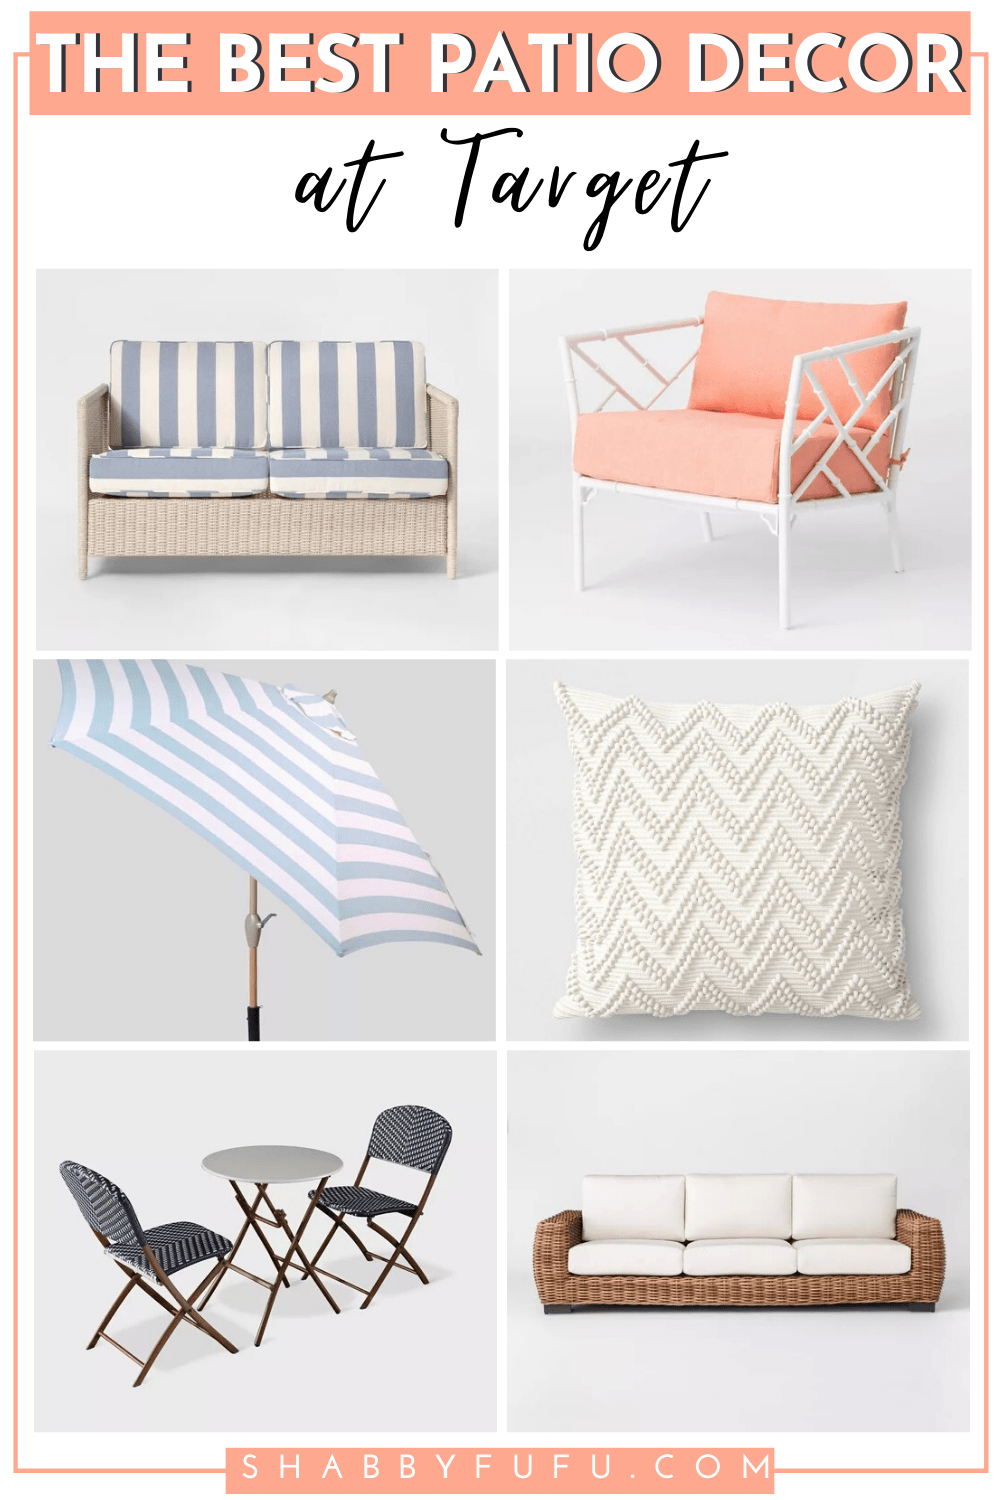 the best patio furniture and decor at Target